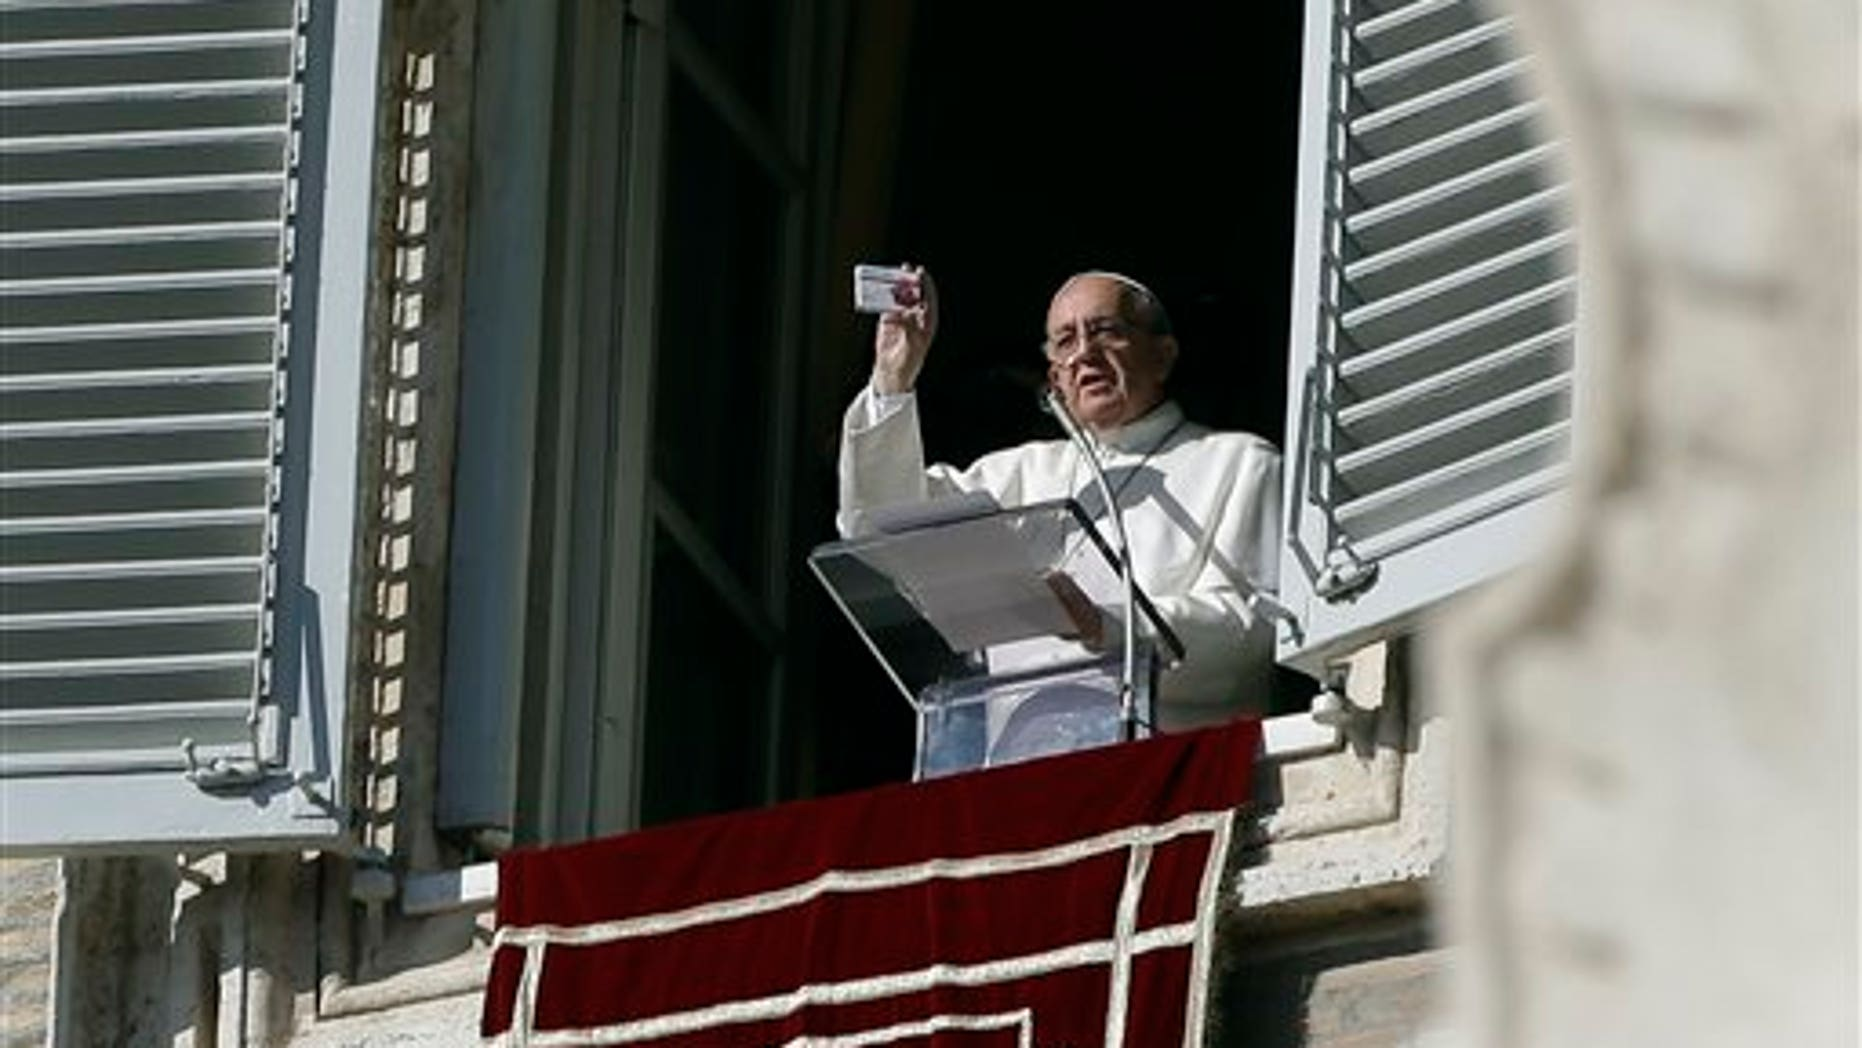 Pope Francis shows a rosary in a box designed to resemble a packets of pills, during his traditional Sunday's appearance from his studio overlooking St. Peter's Square at the Vatican, Sunday, Nov. 17, 2013. Joking that he's like a pharmacist, Pope Francis is promoting prayer as medicine for the heart. (AP Photo/Gregorio Borgia)